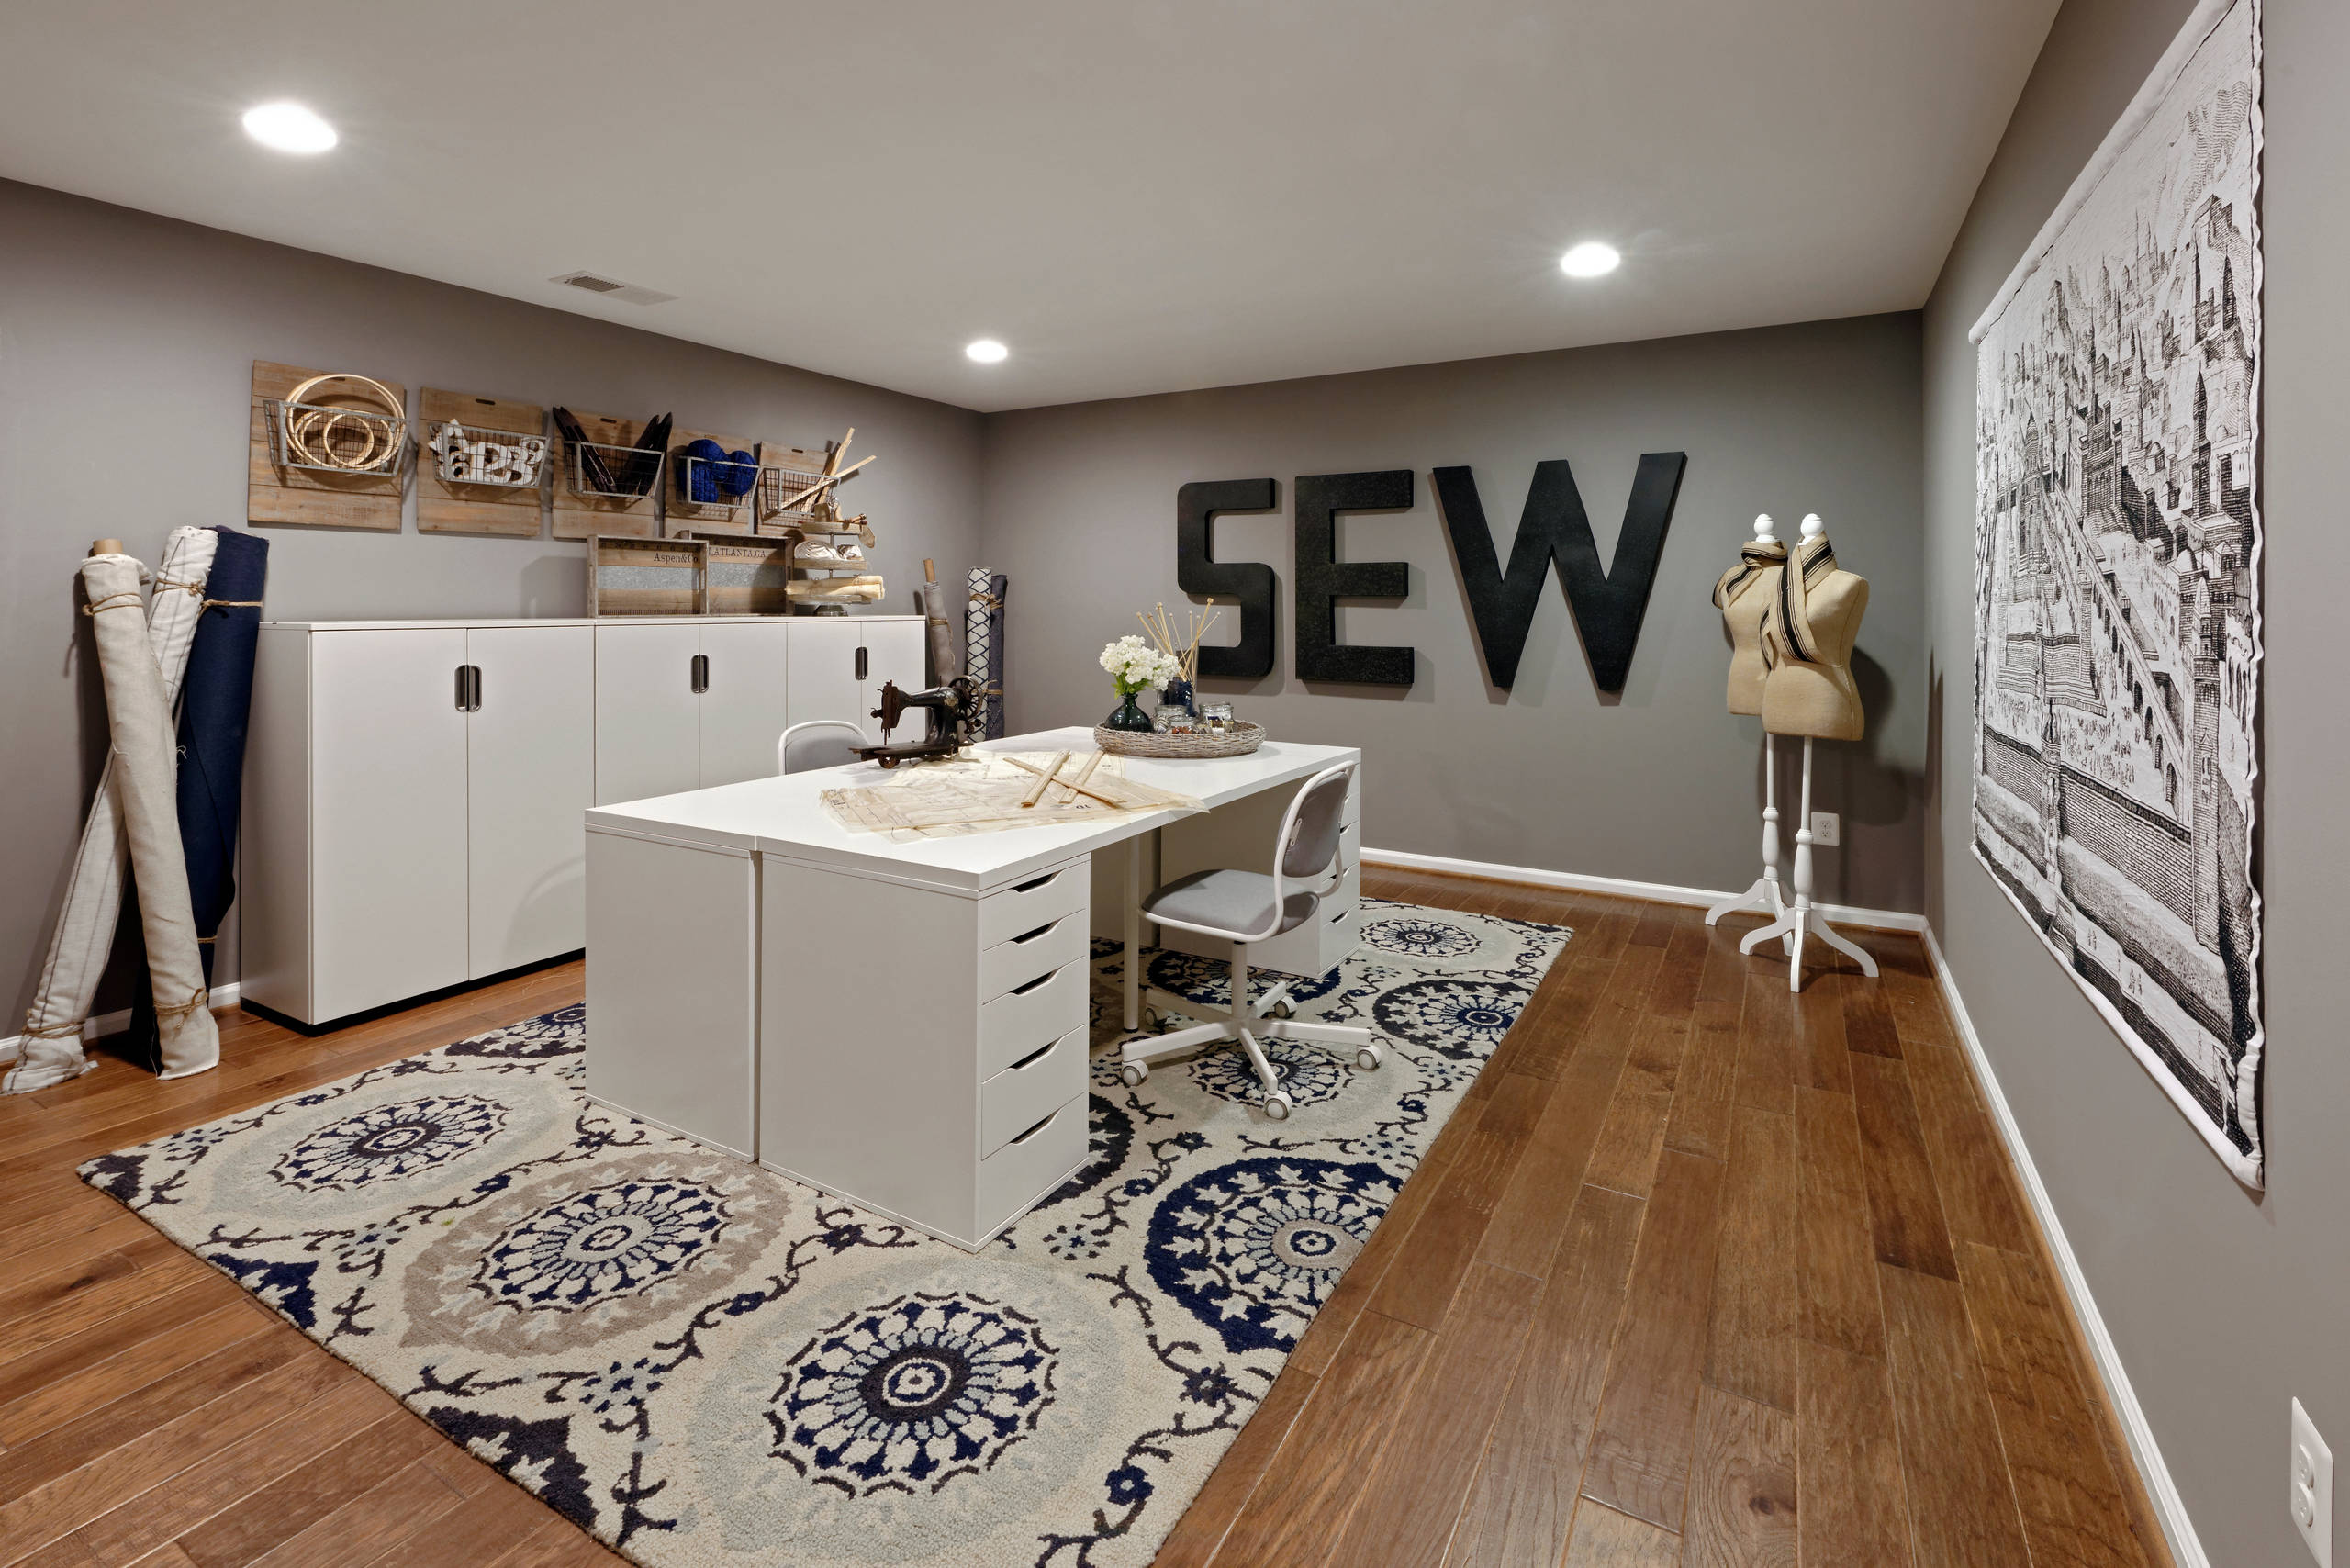 75 Beautiful Craft Room Pictures Ideas February 2021 Houzz